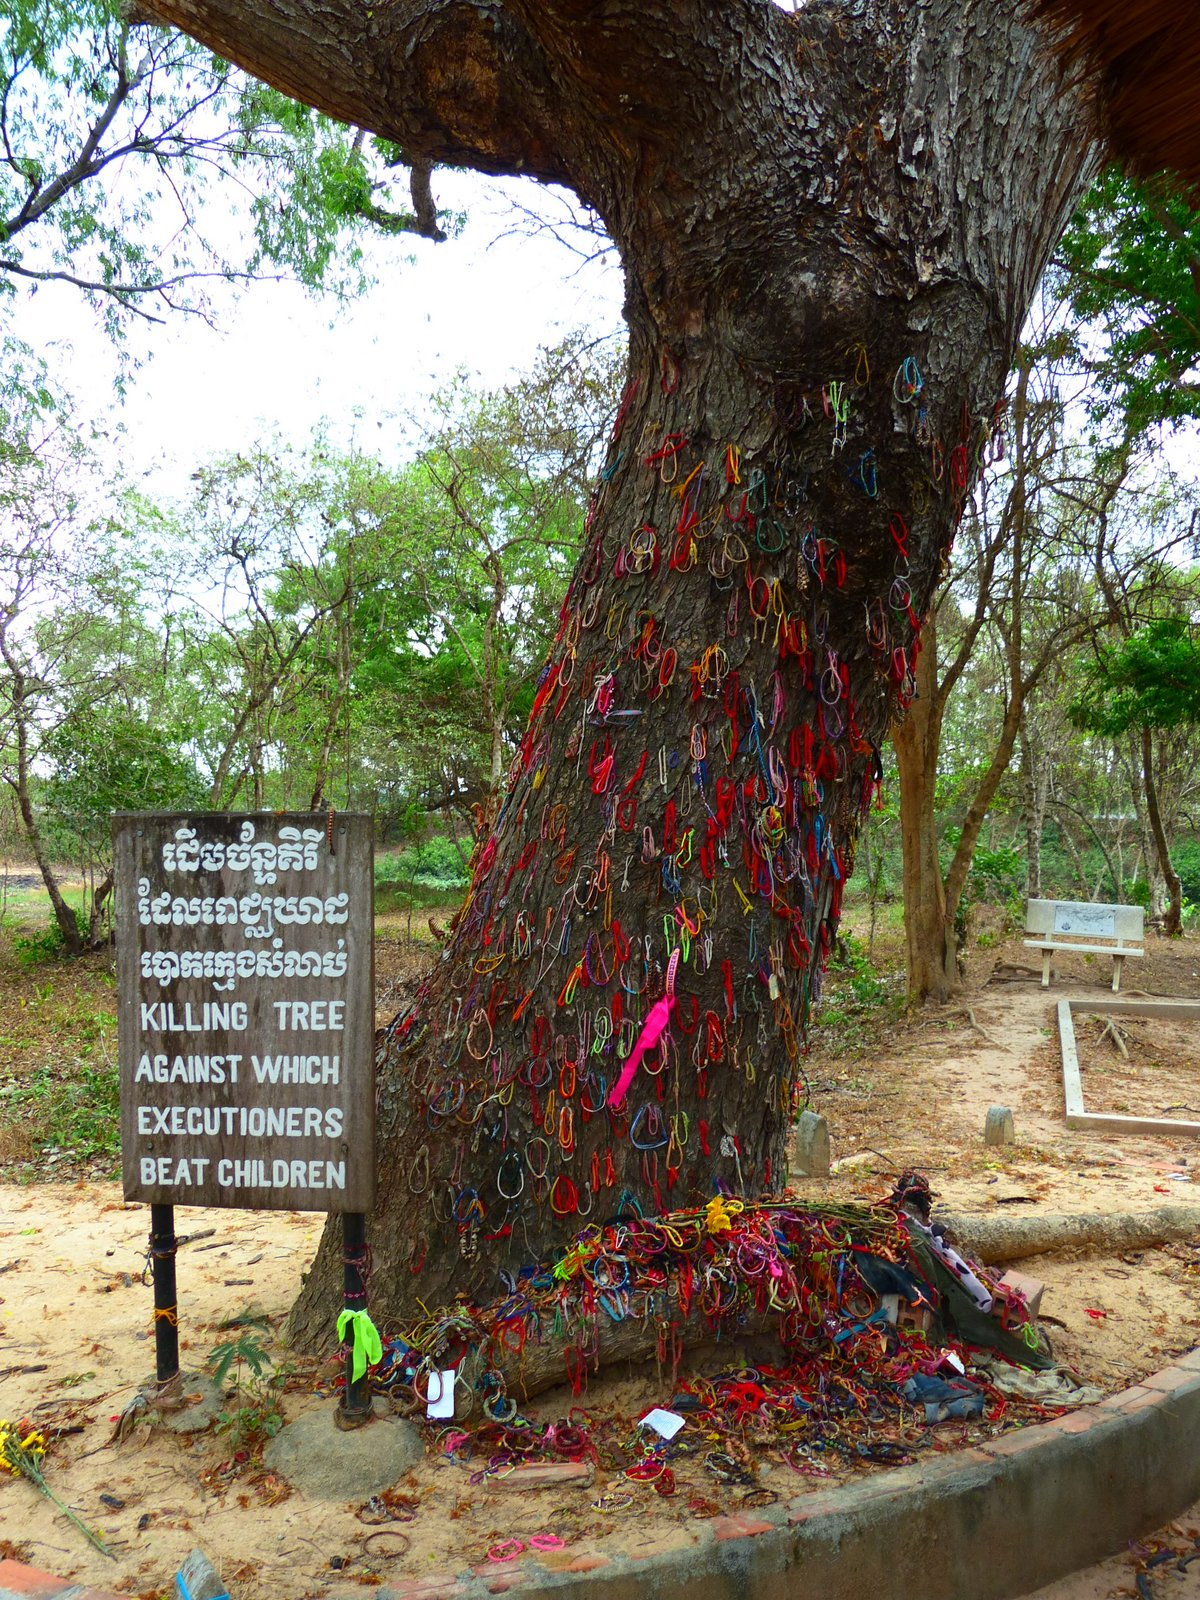 A Chankiri (or Killing) Tree at Cheoung Ek. Executioners beat small children and babies against this tree before tossing them into the mass graves with their mothers. This tree at Choeung Ek is covered with brightly colored bracelet tributes in remembrance of all the children who lost their lives here.